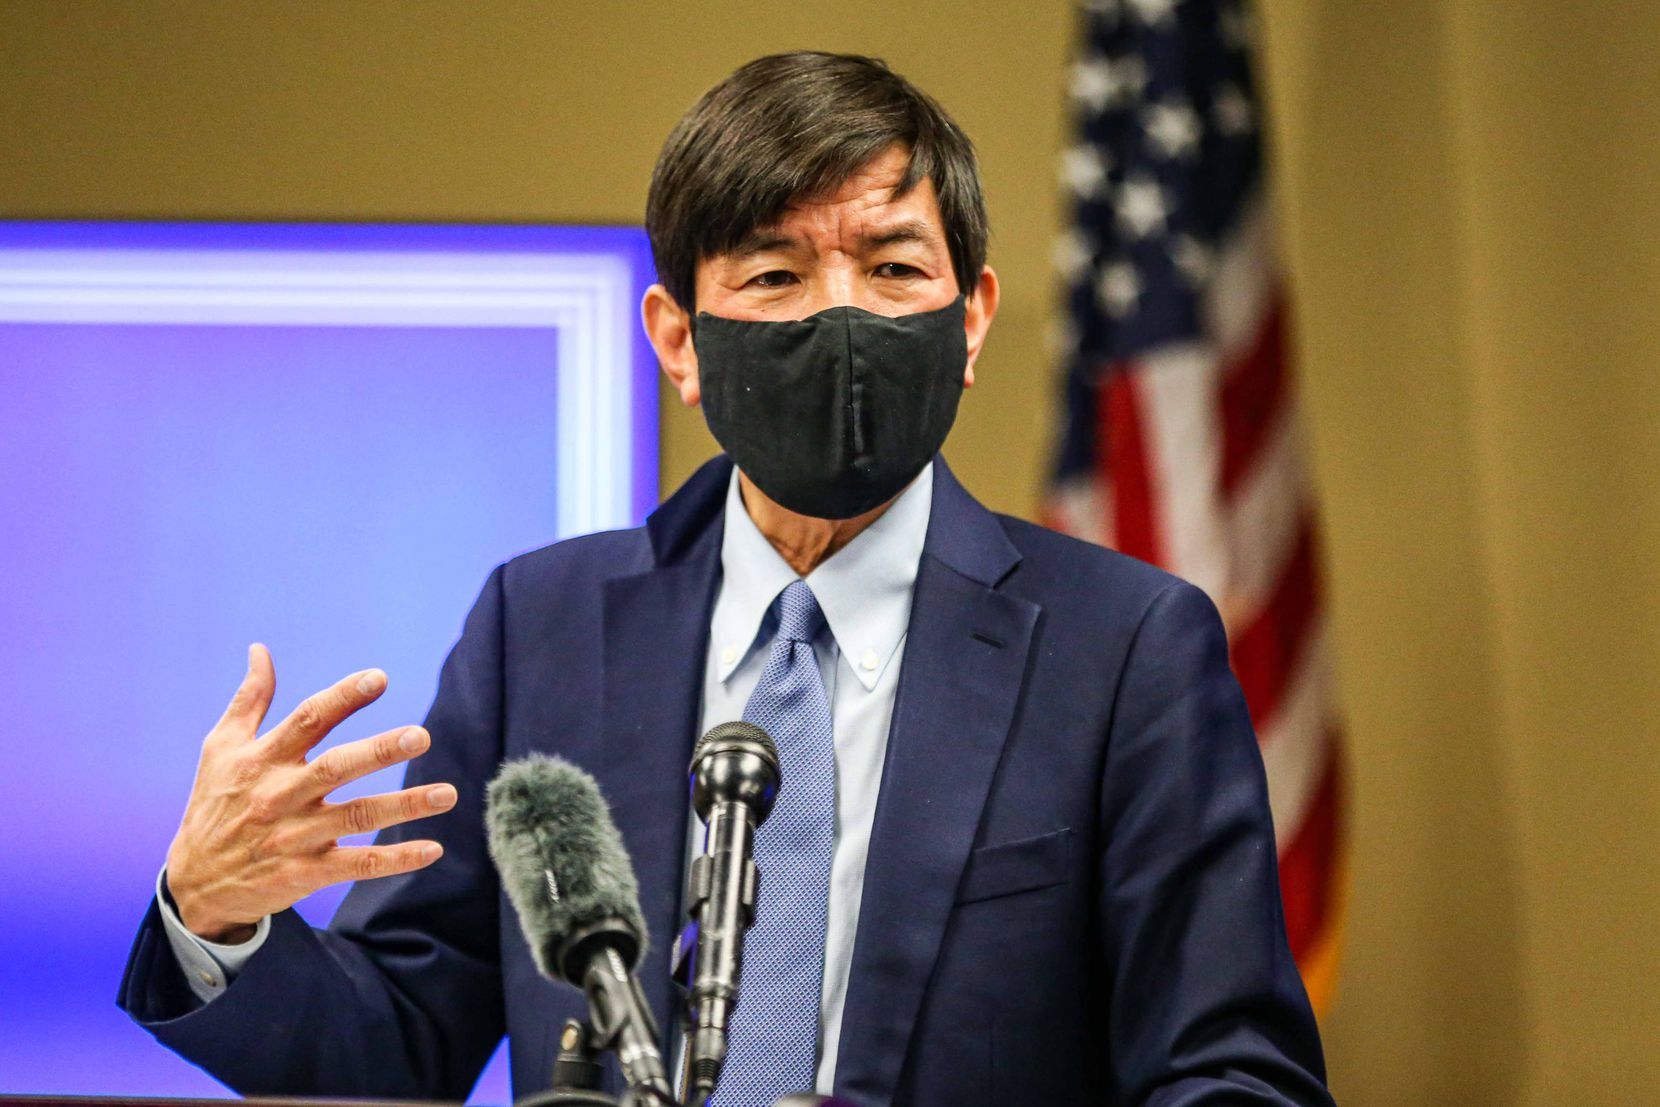 Dr. Philip Huang, director of the Dallas County Health and Human Services, during a press conference to discuss the coronavirus pandemic in Dallas on Friday, Dec. 18, 2020.